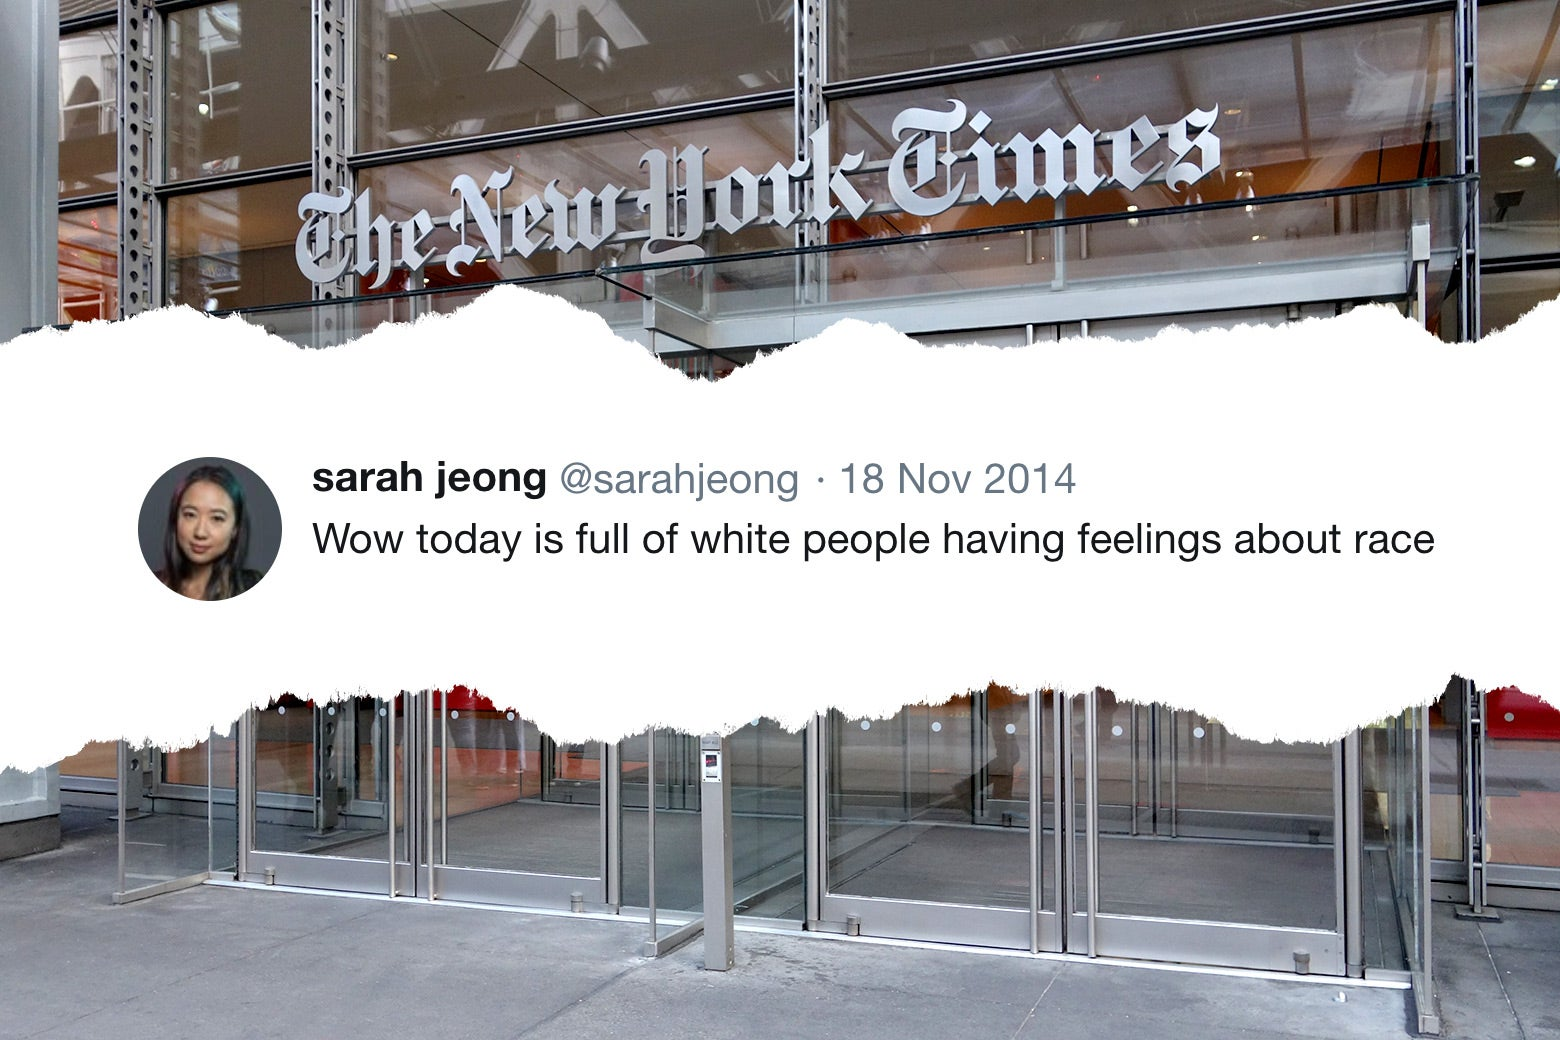 An old Sarah Jeong tweet and the New York Times building.